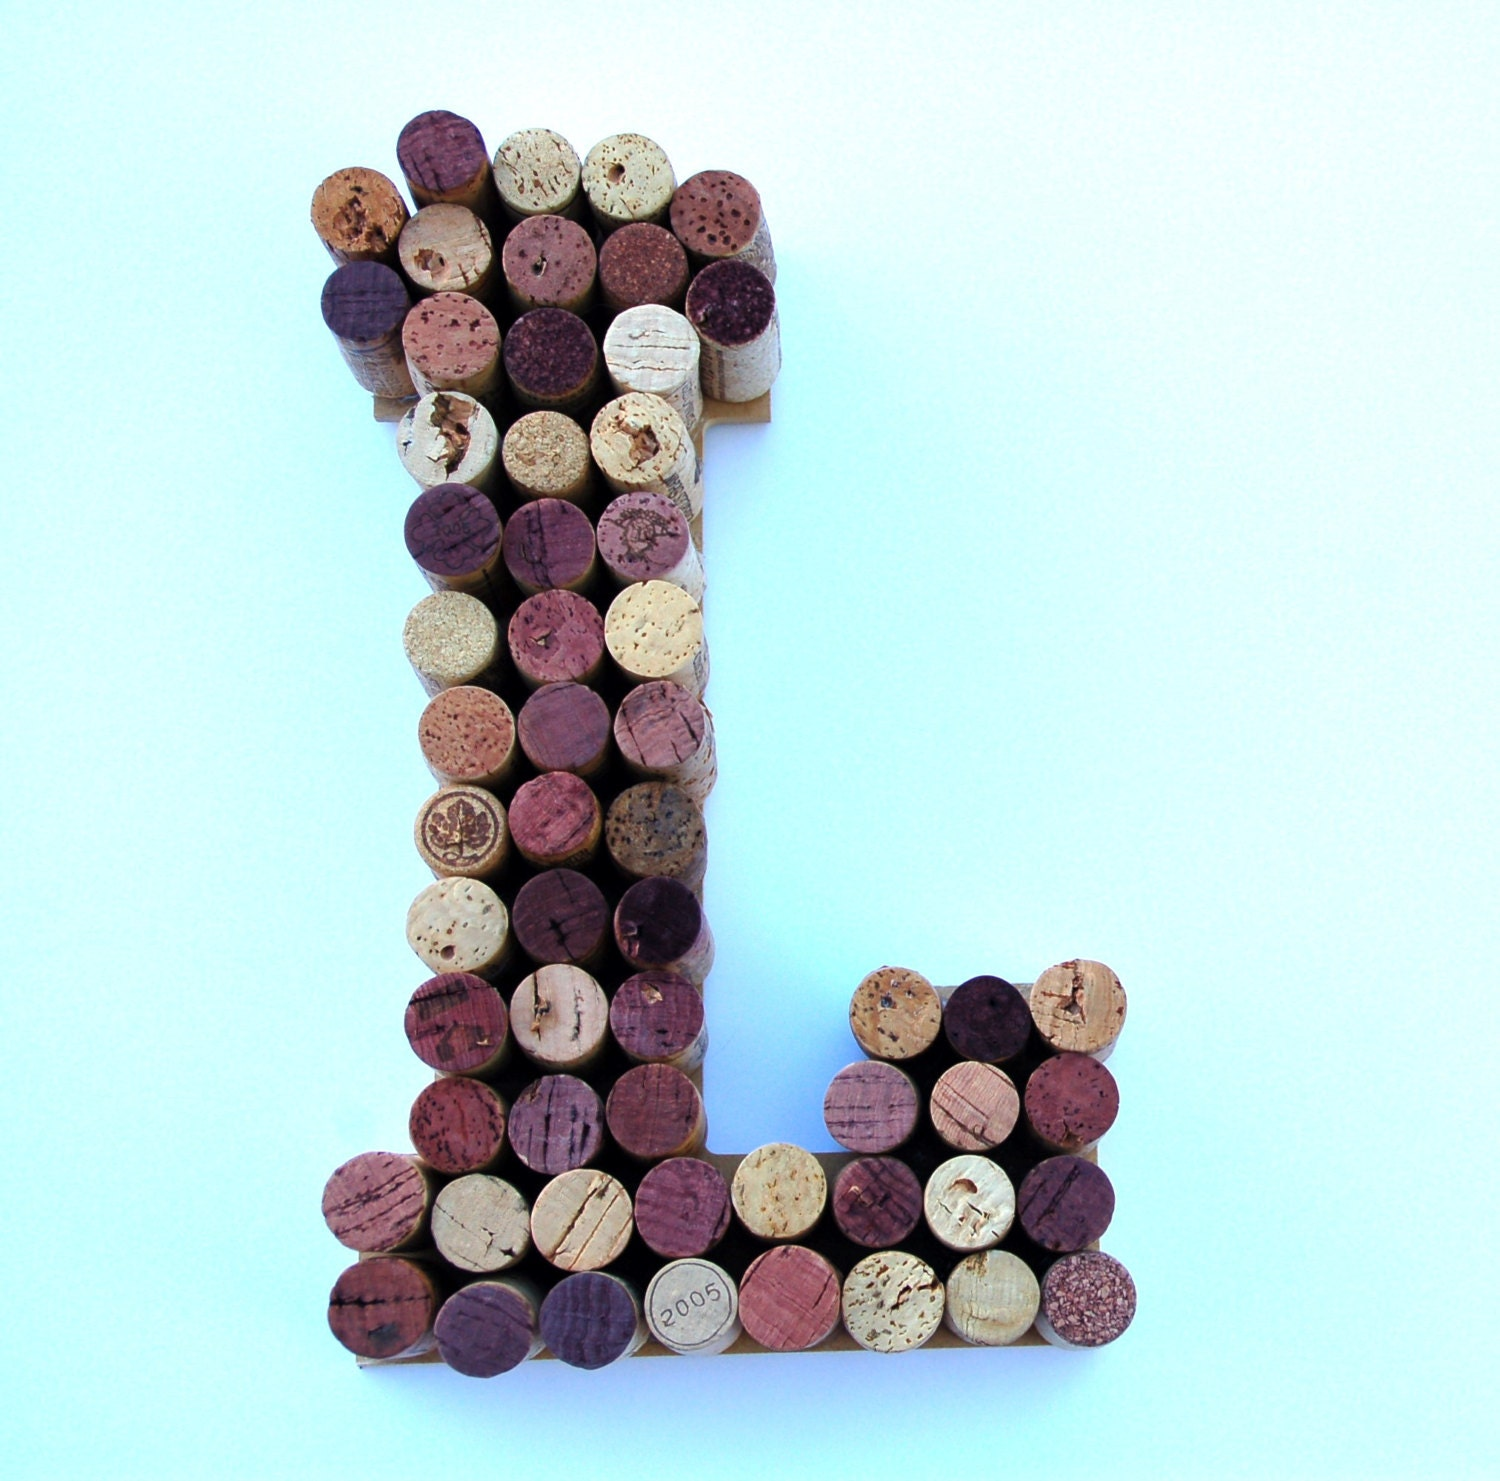 Real Weddings Cork: Wine Cork Letter L Made From Real Wine Corks Cork Letters